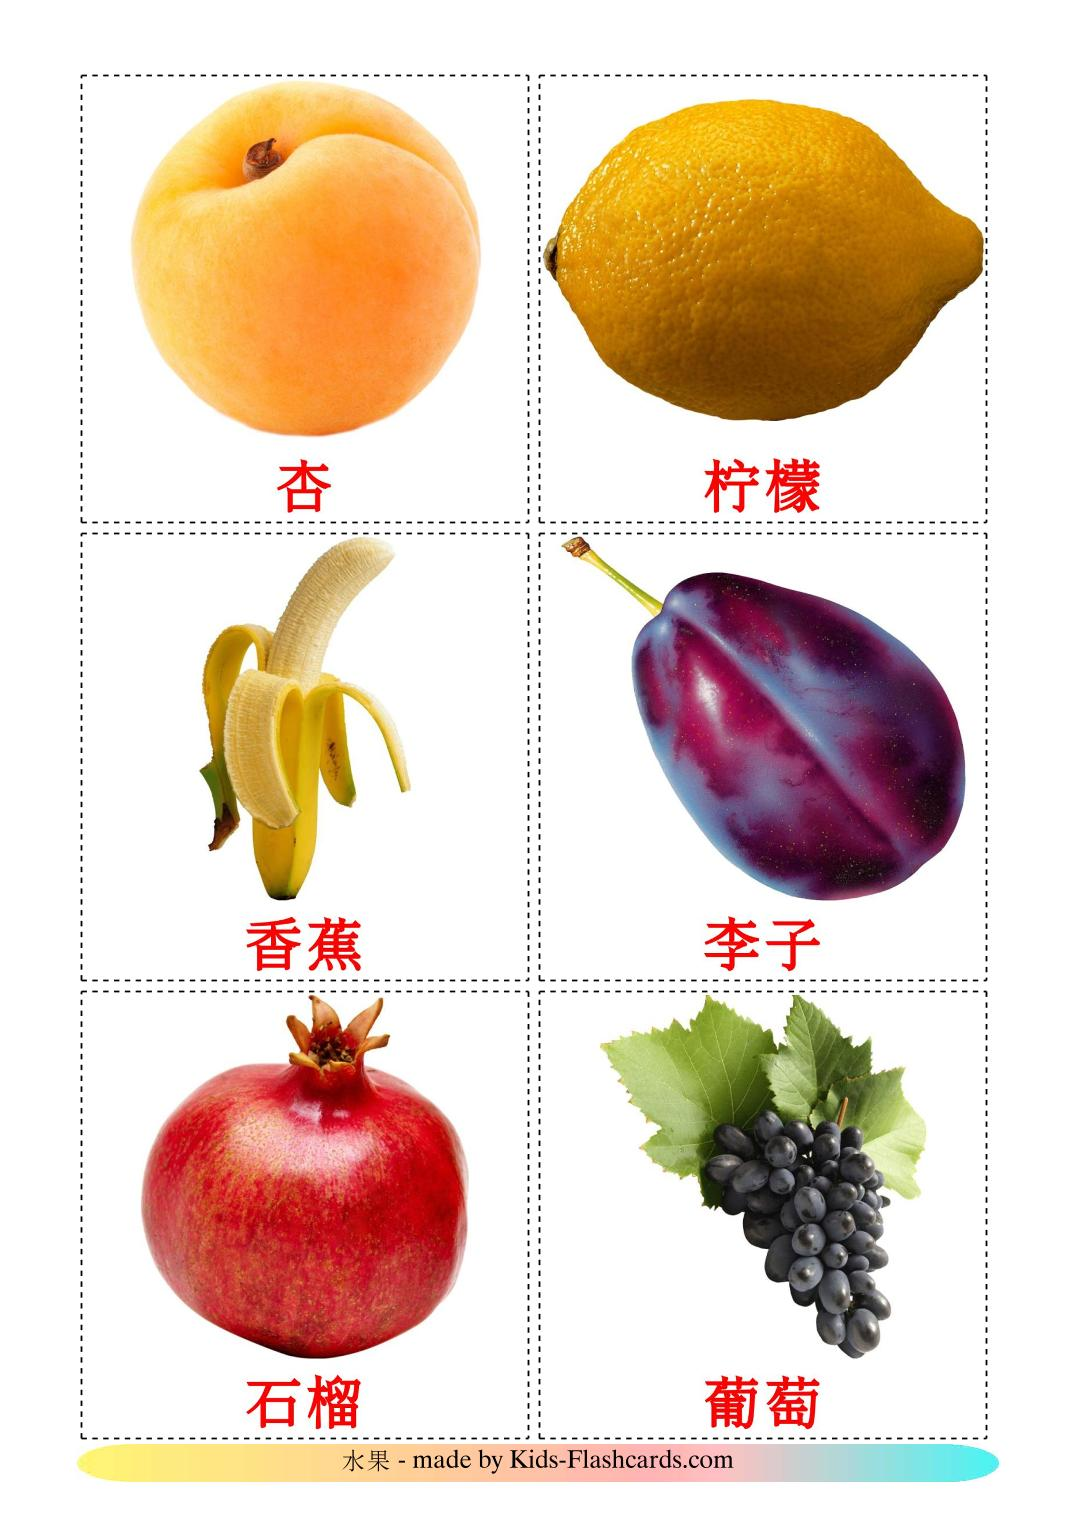 Fruits - 20 Free Printable chinese(Simplified) Flashcards